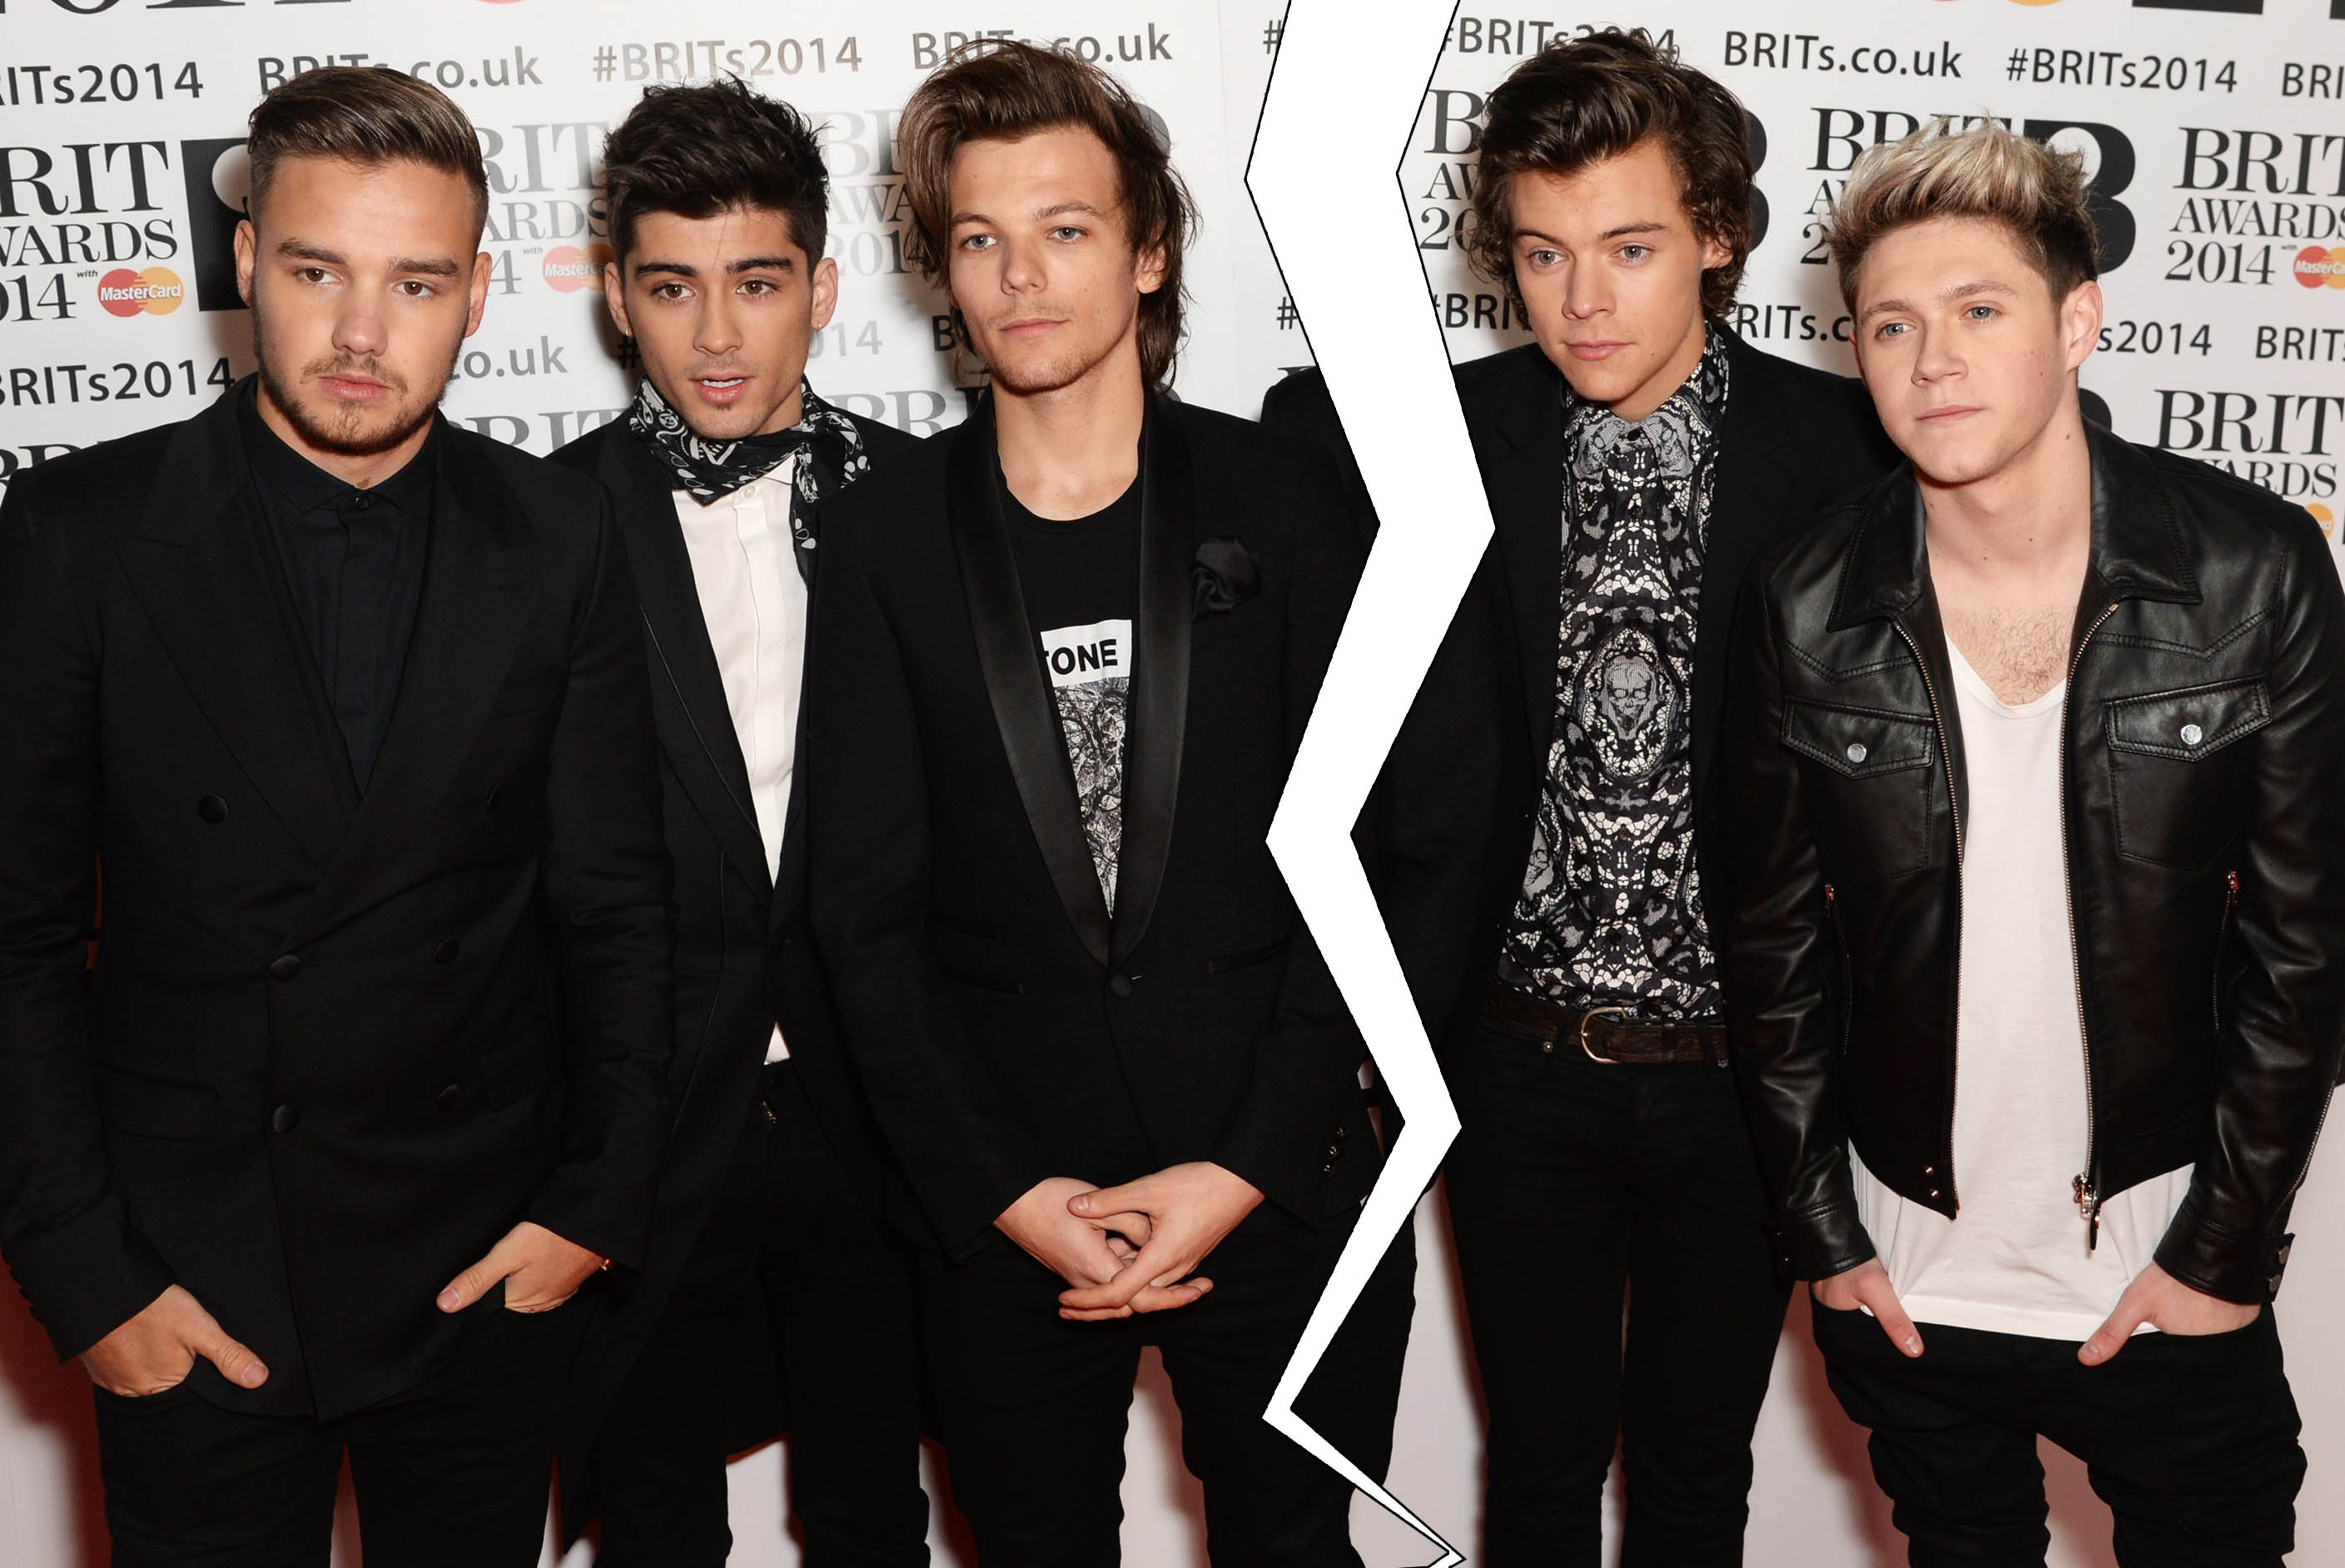 One Direction To Go Separate Ways In March What Do You Think